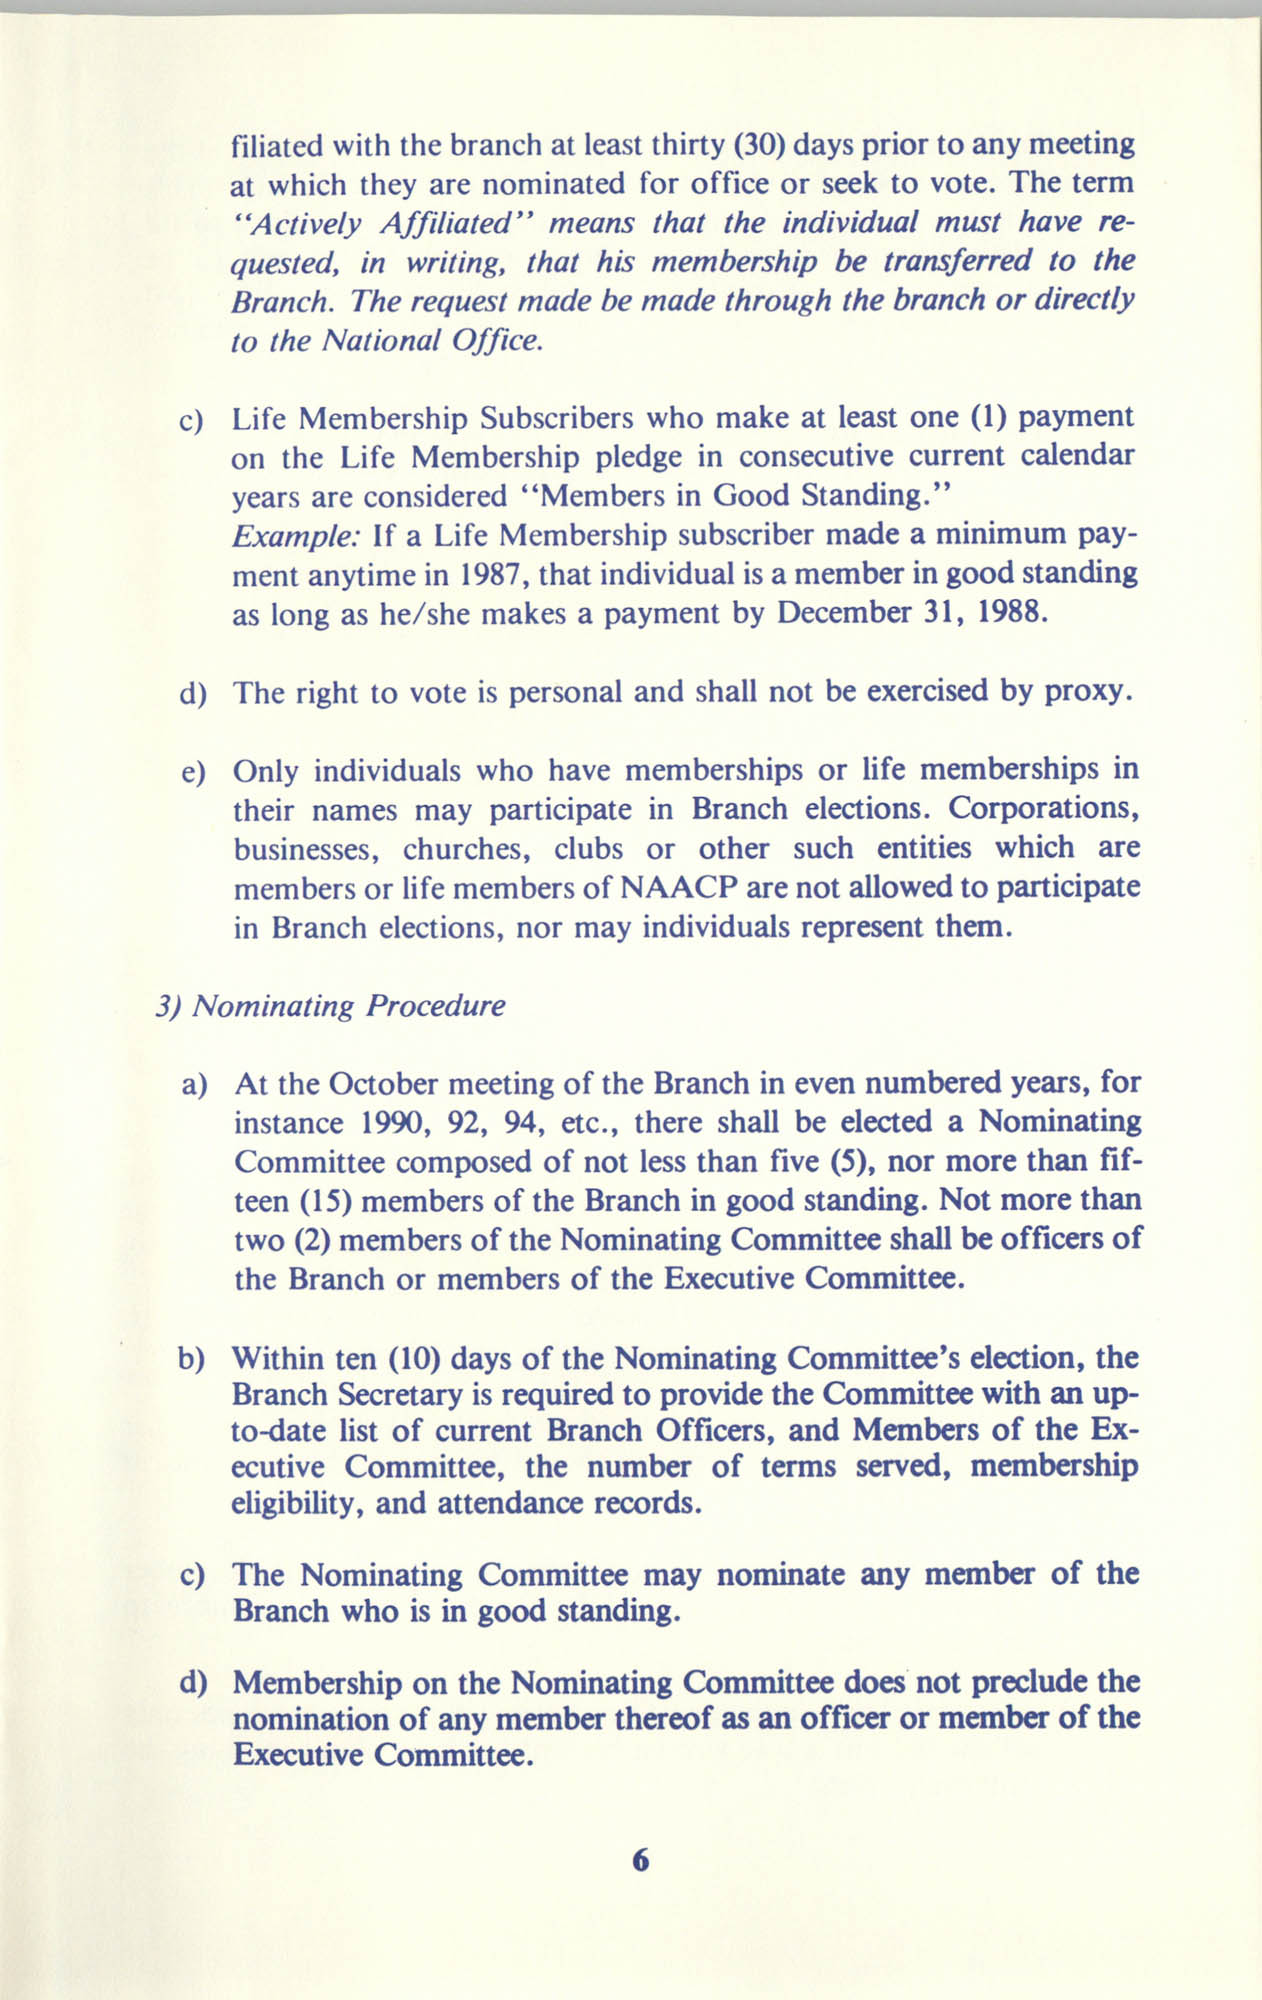 Manual on Branch Election Procedure, Page 6